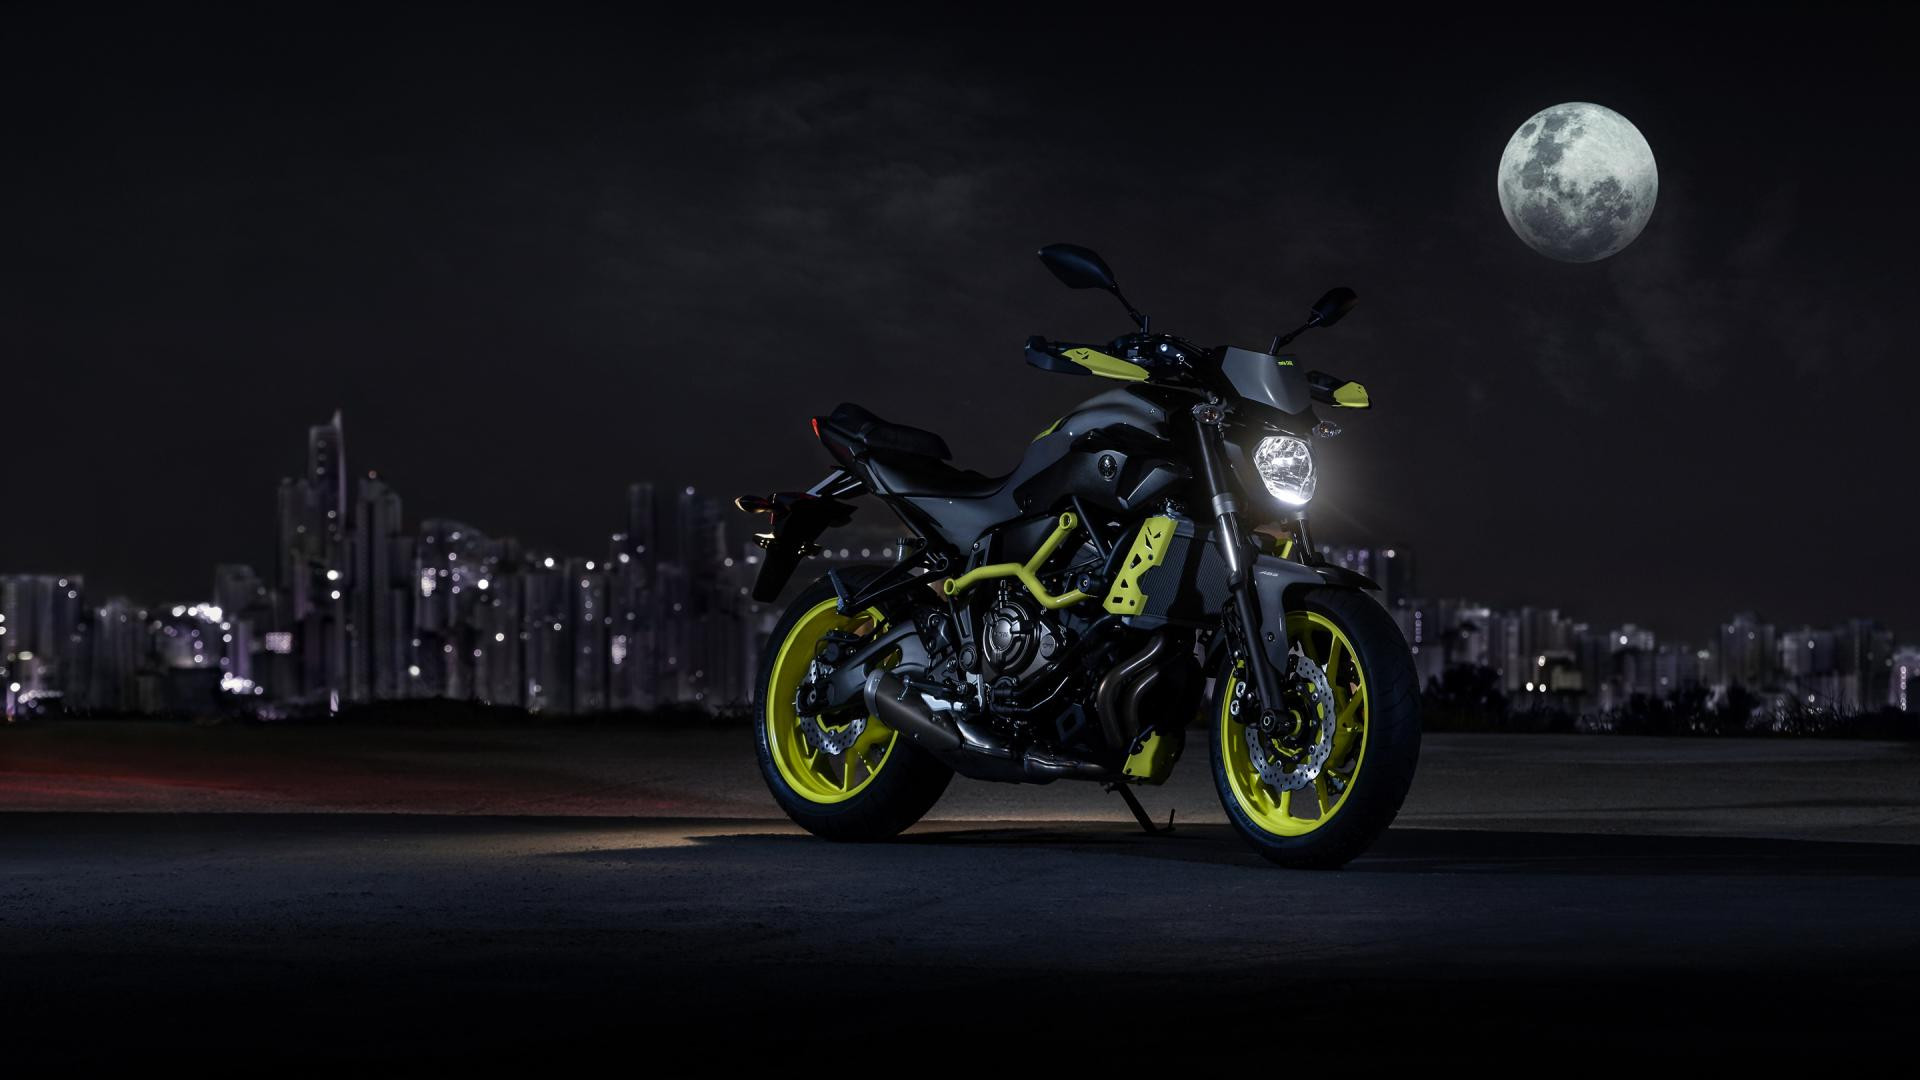 yamaha-city-wallpapers-65708-9726042.jpg